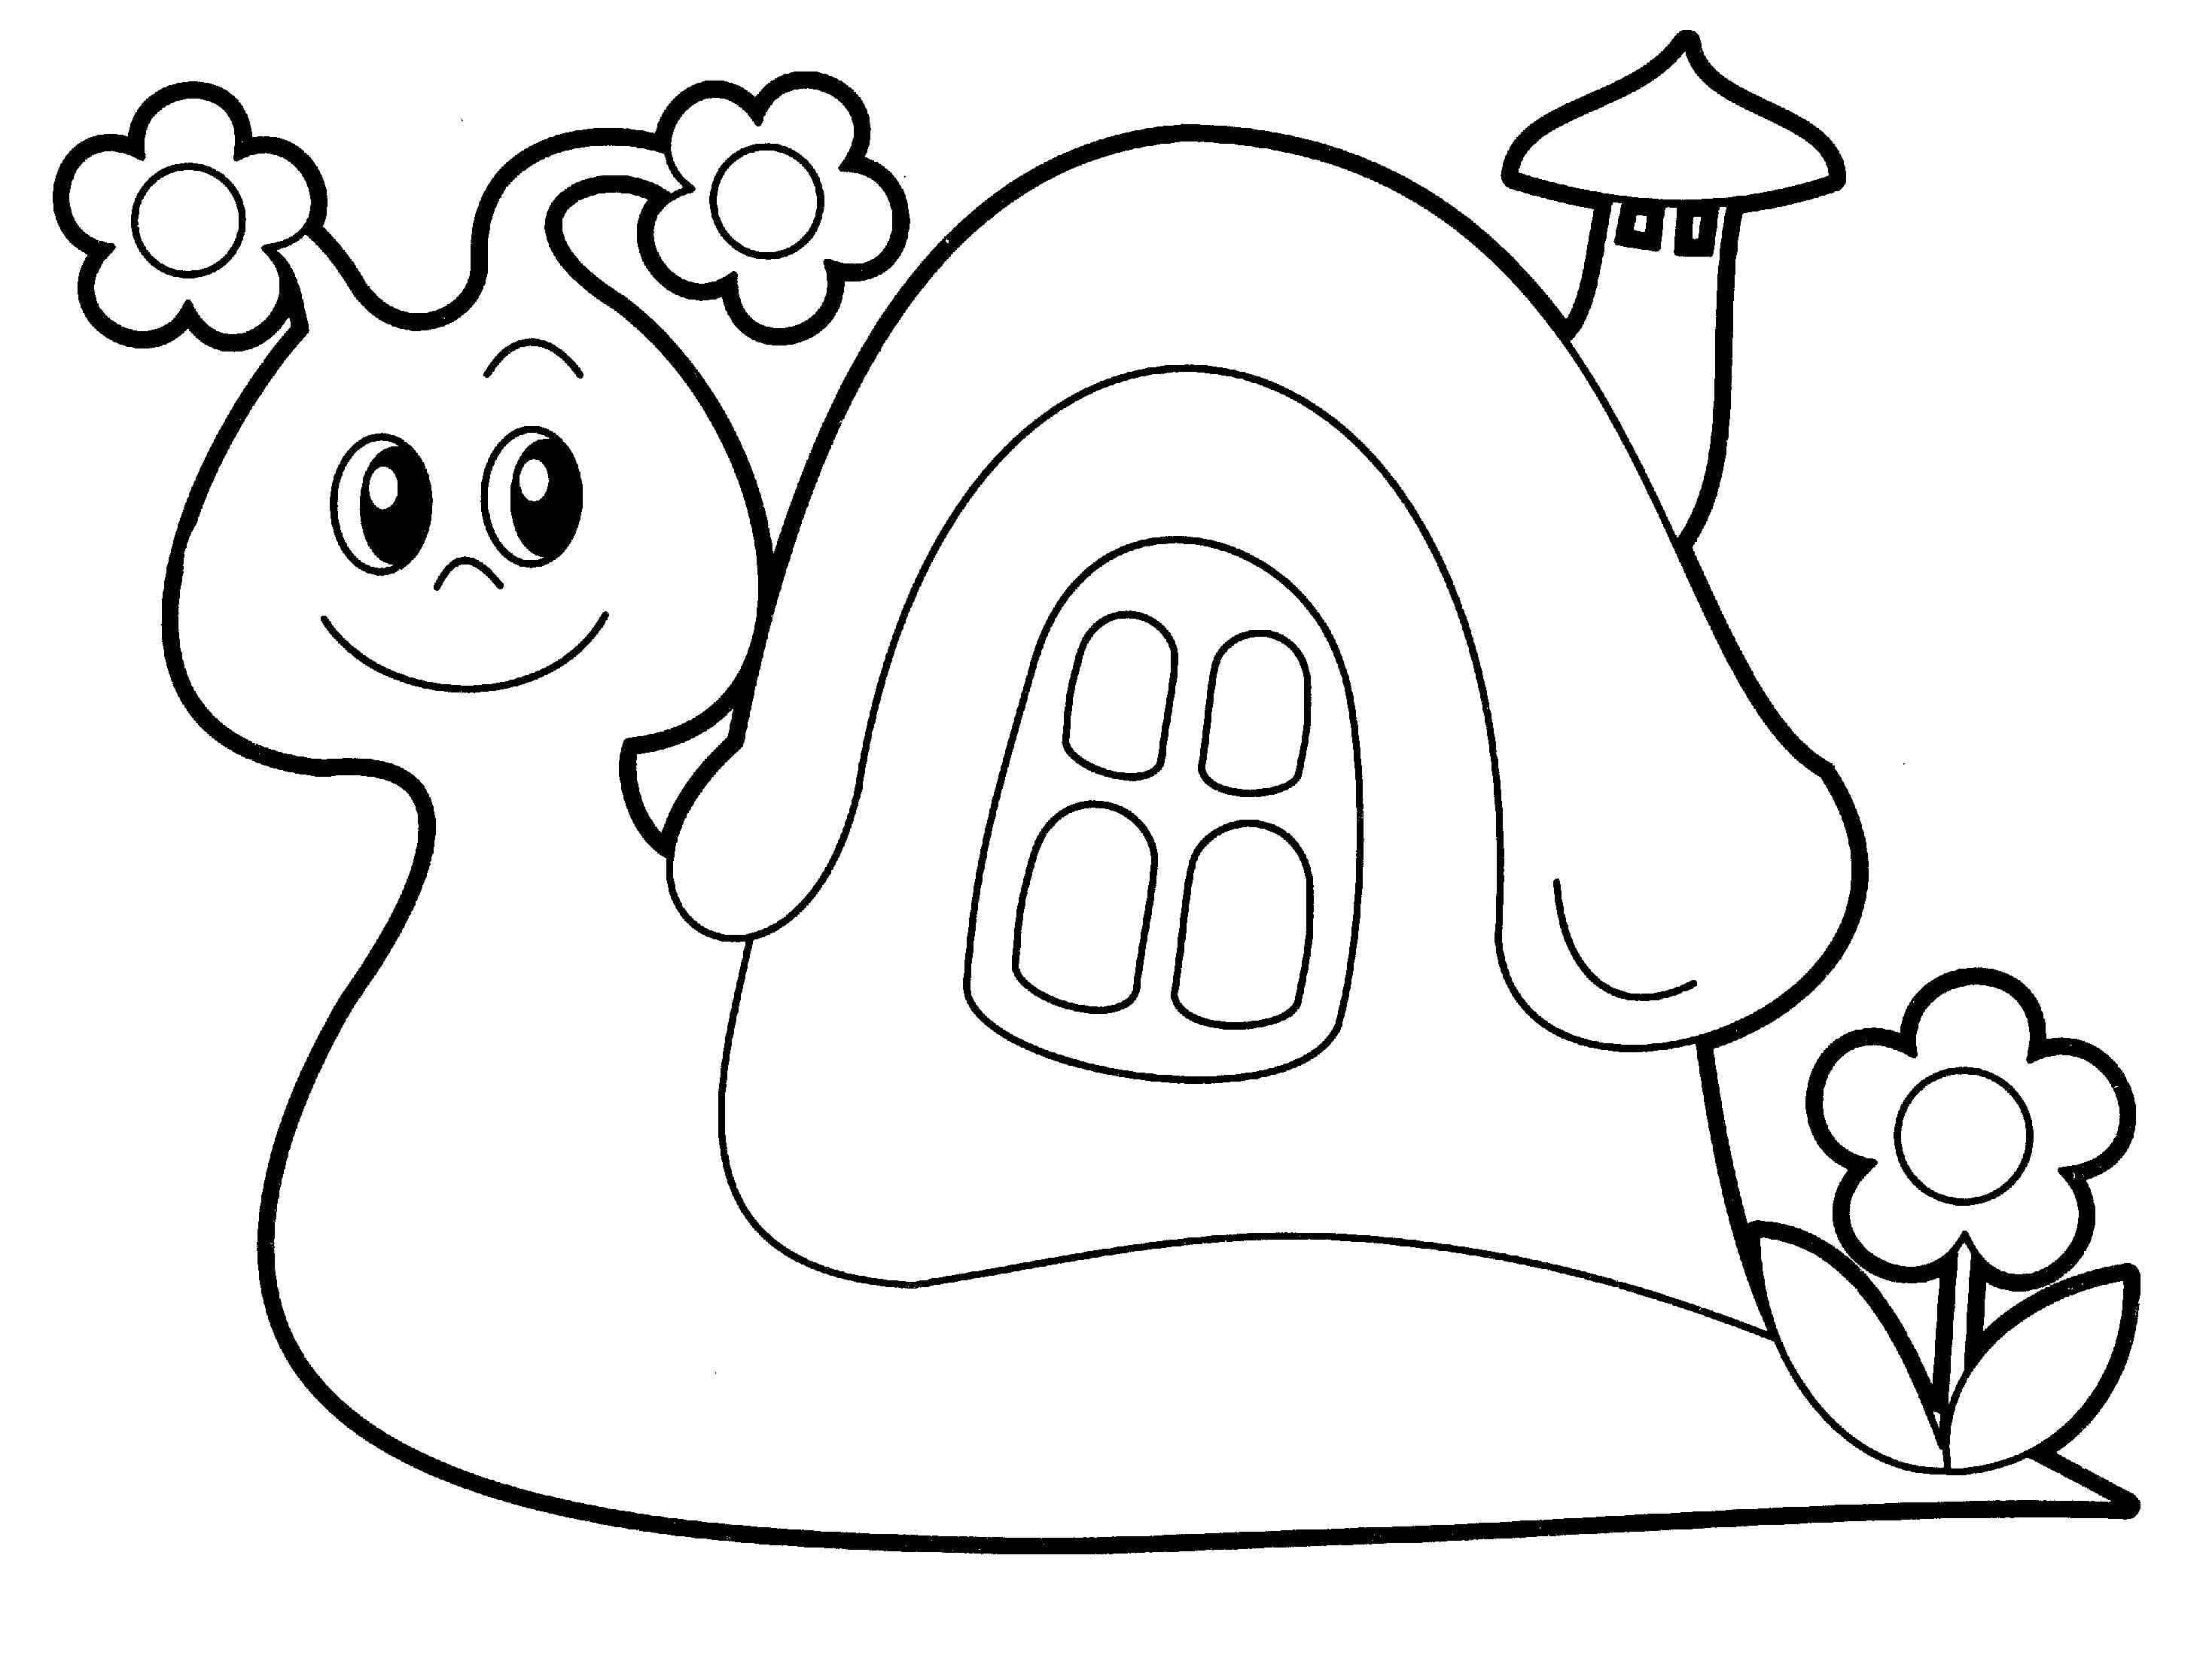 Coloring pages for girls 3-4 years. Download or print online